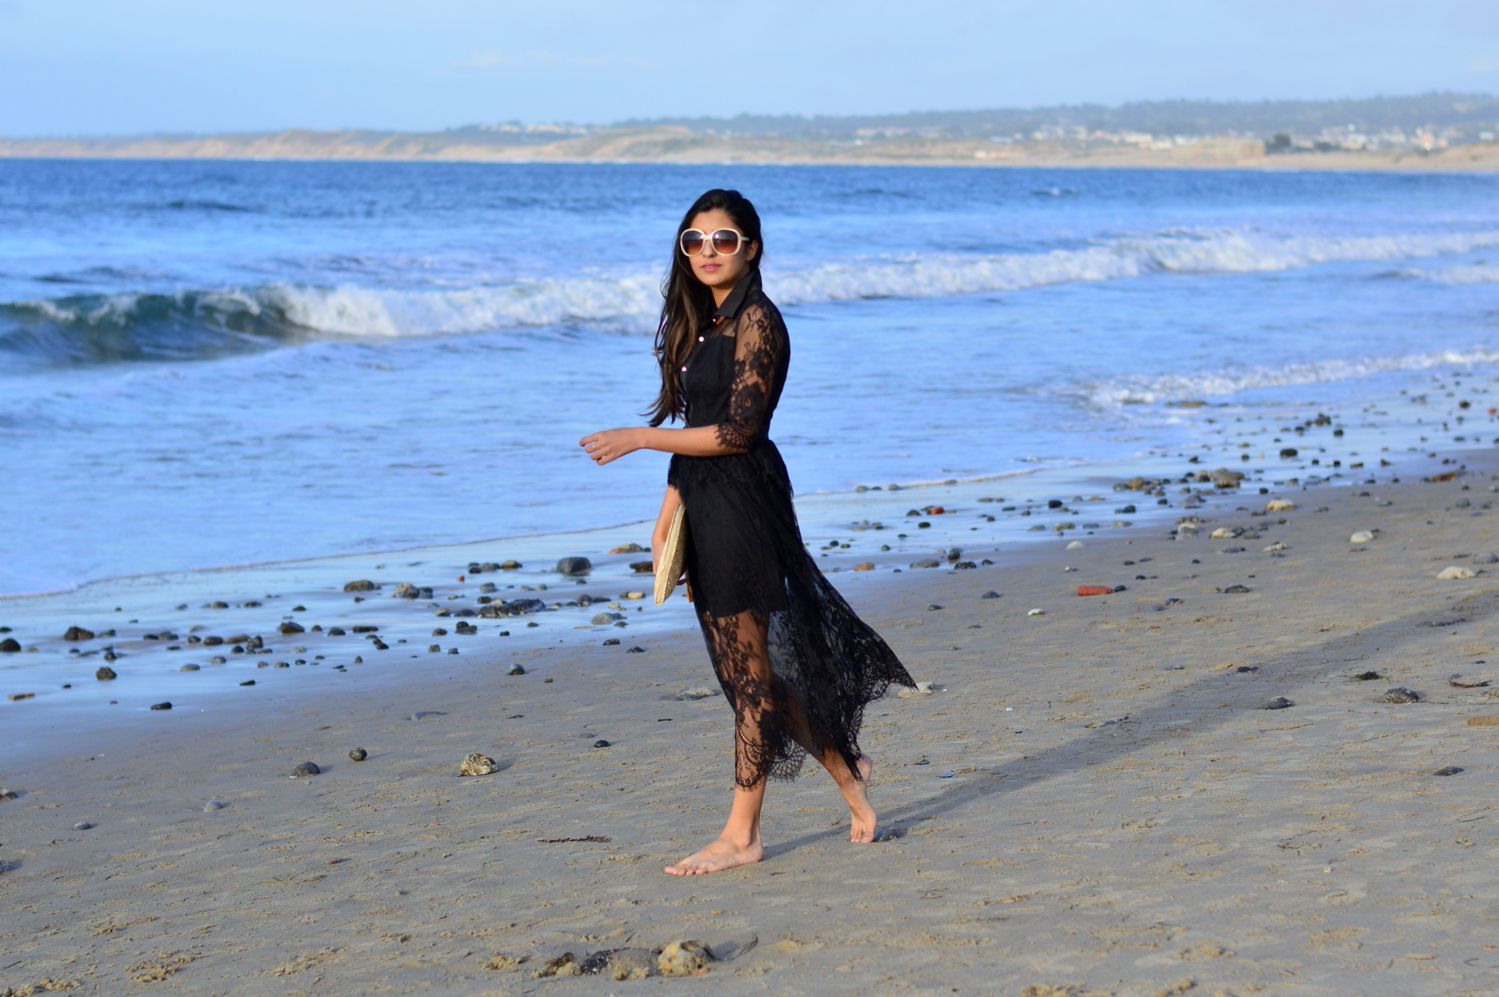 lace-black-maxi-dress-monterey-california-beach-outfit-blogger-style 1